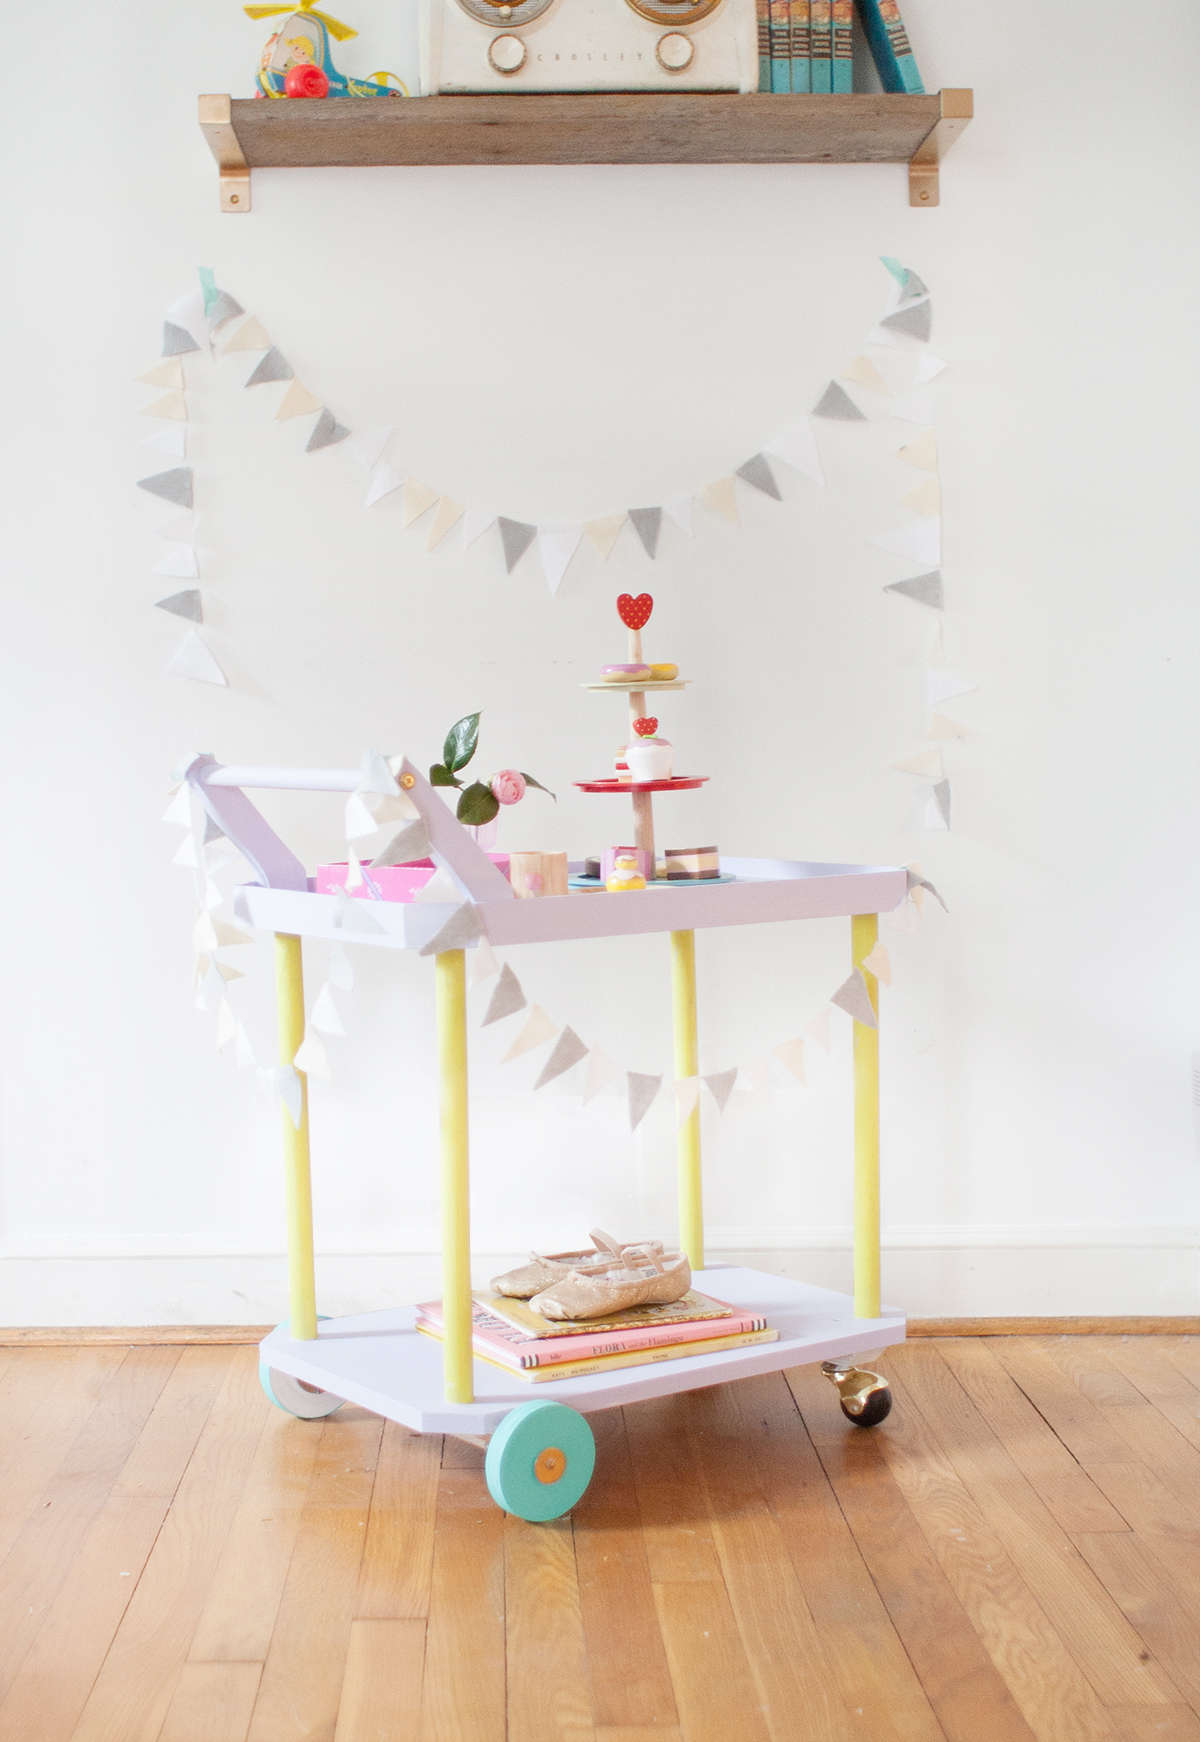 Diy Tea Cart Lay Baby Lay Lay Baby Lay